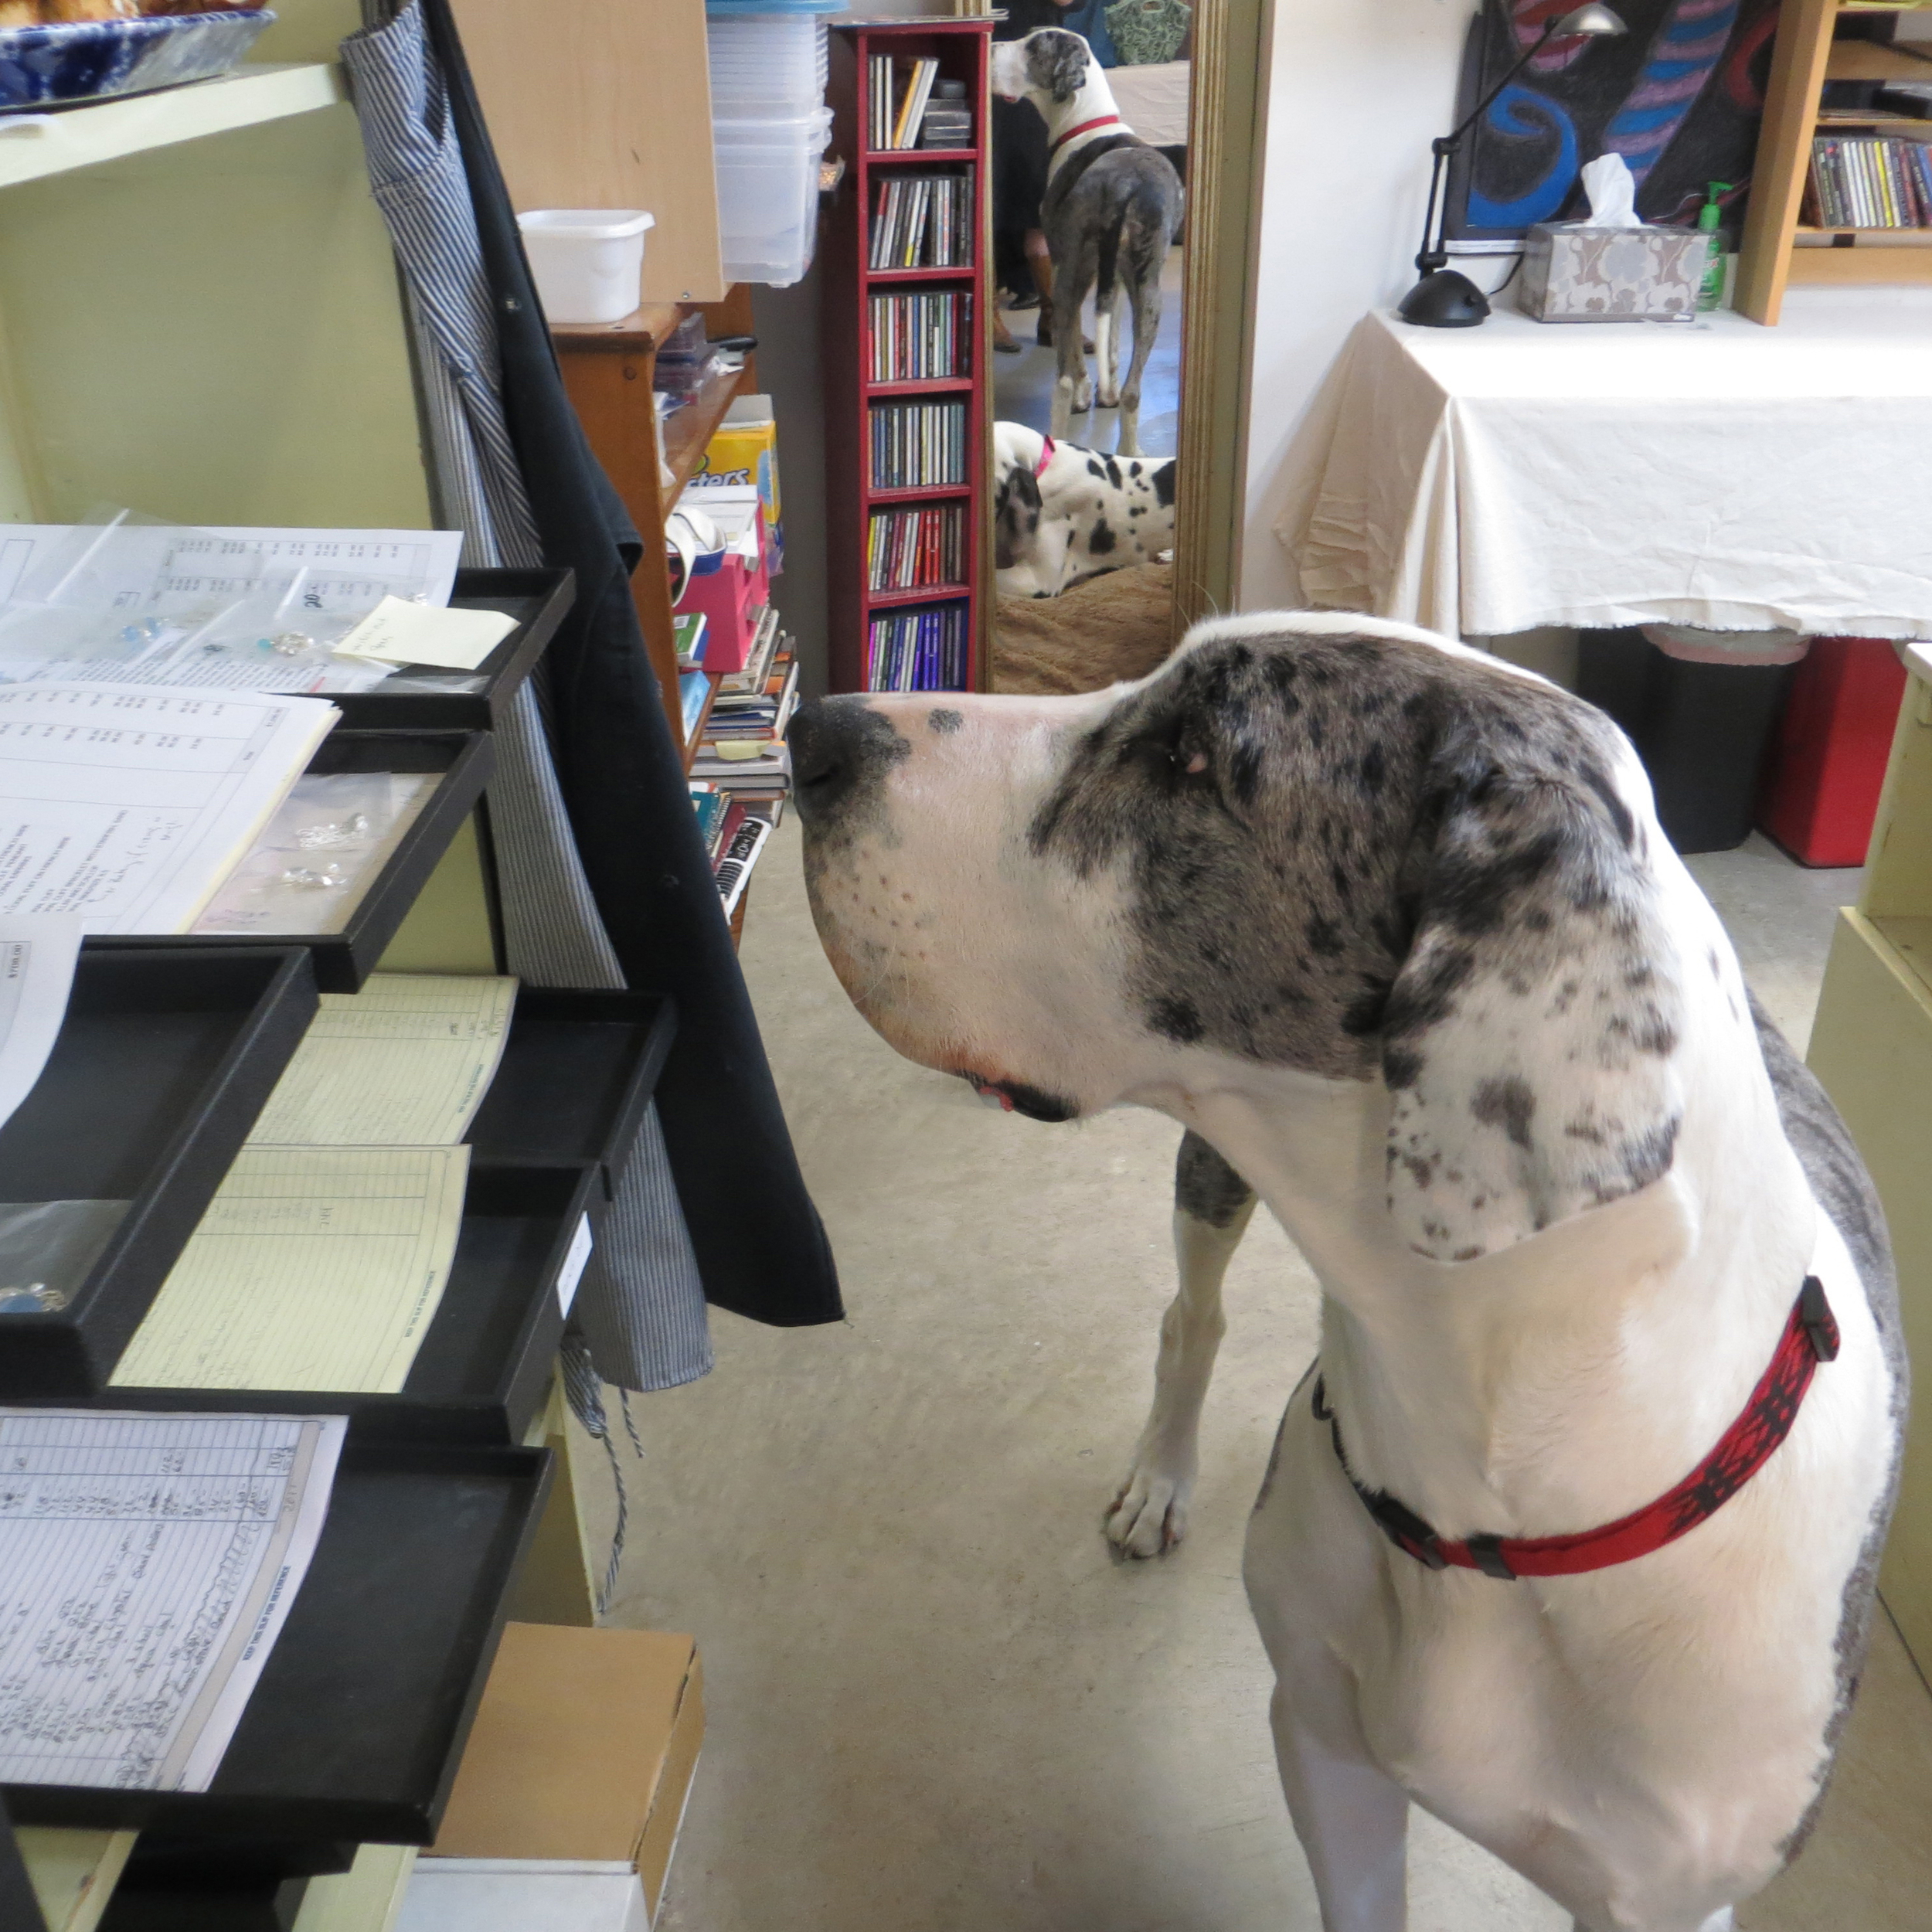 Scarlet: Making sure orders are being done correctly